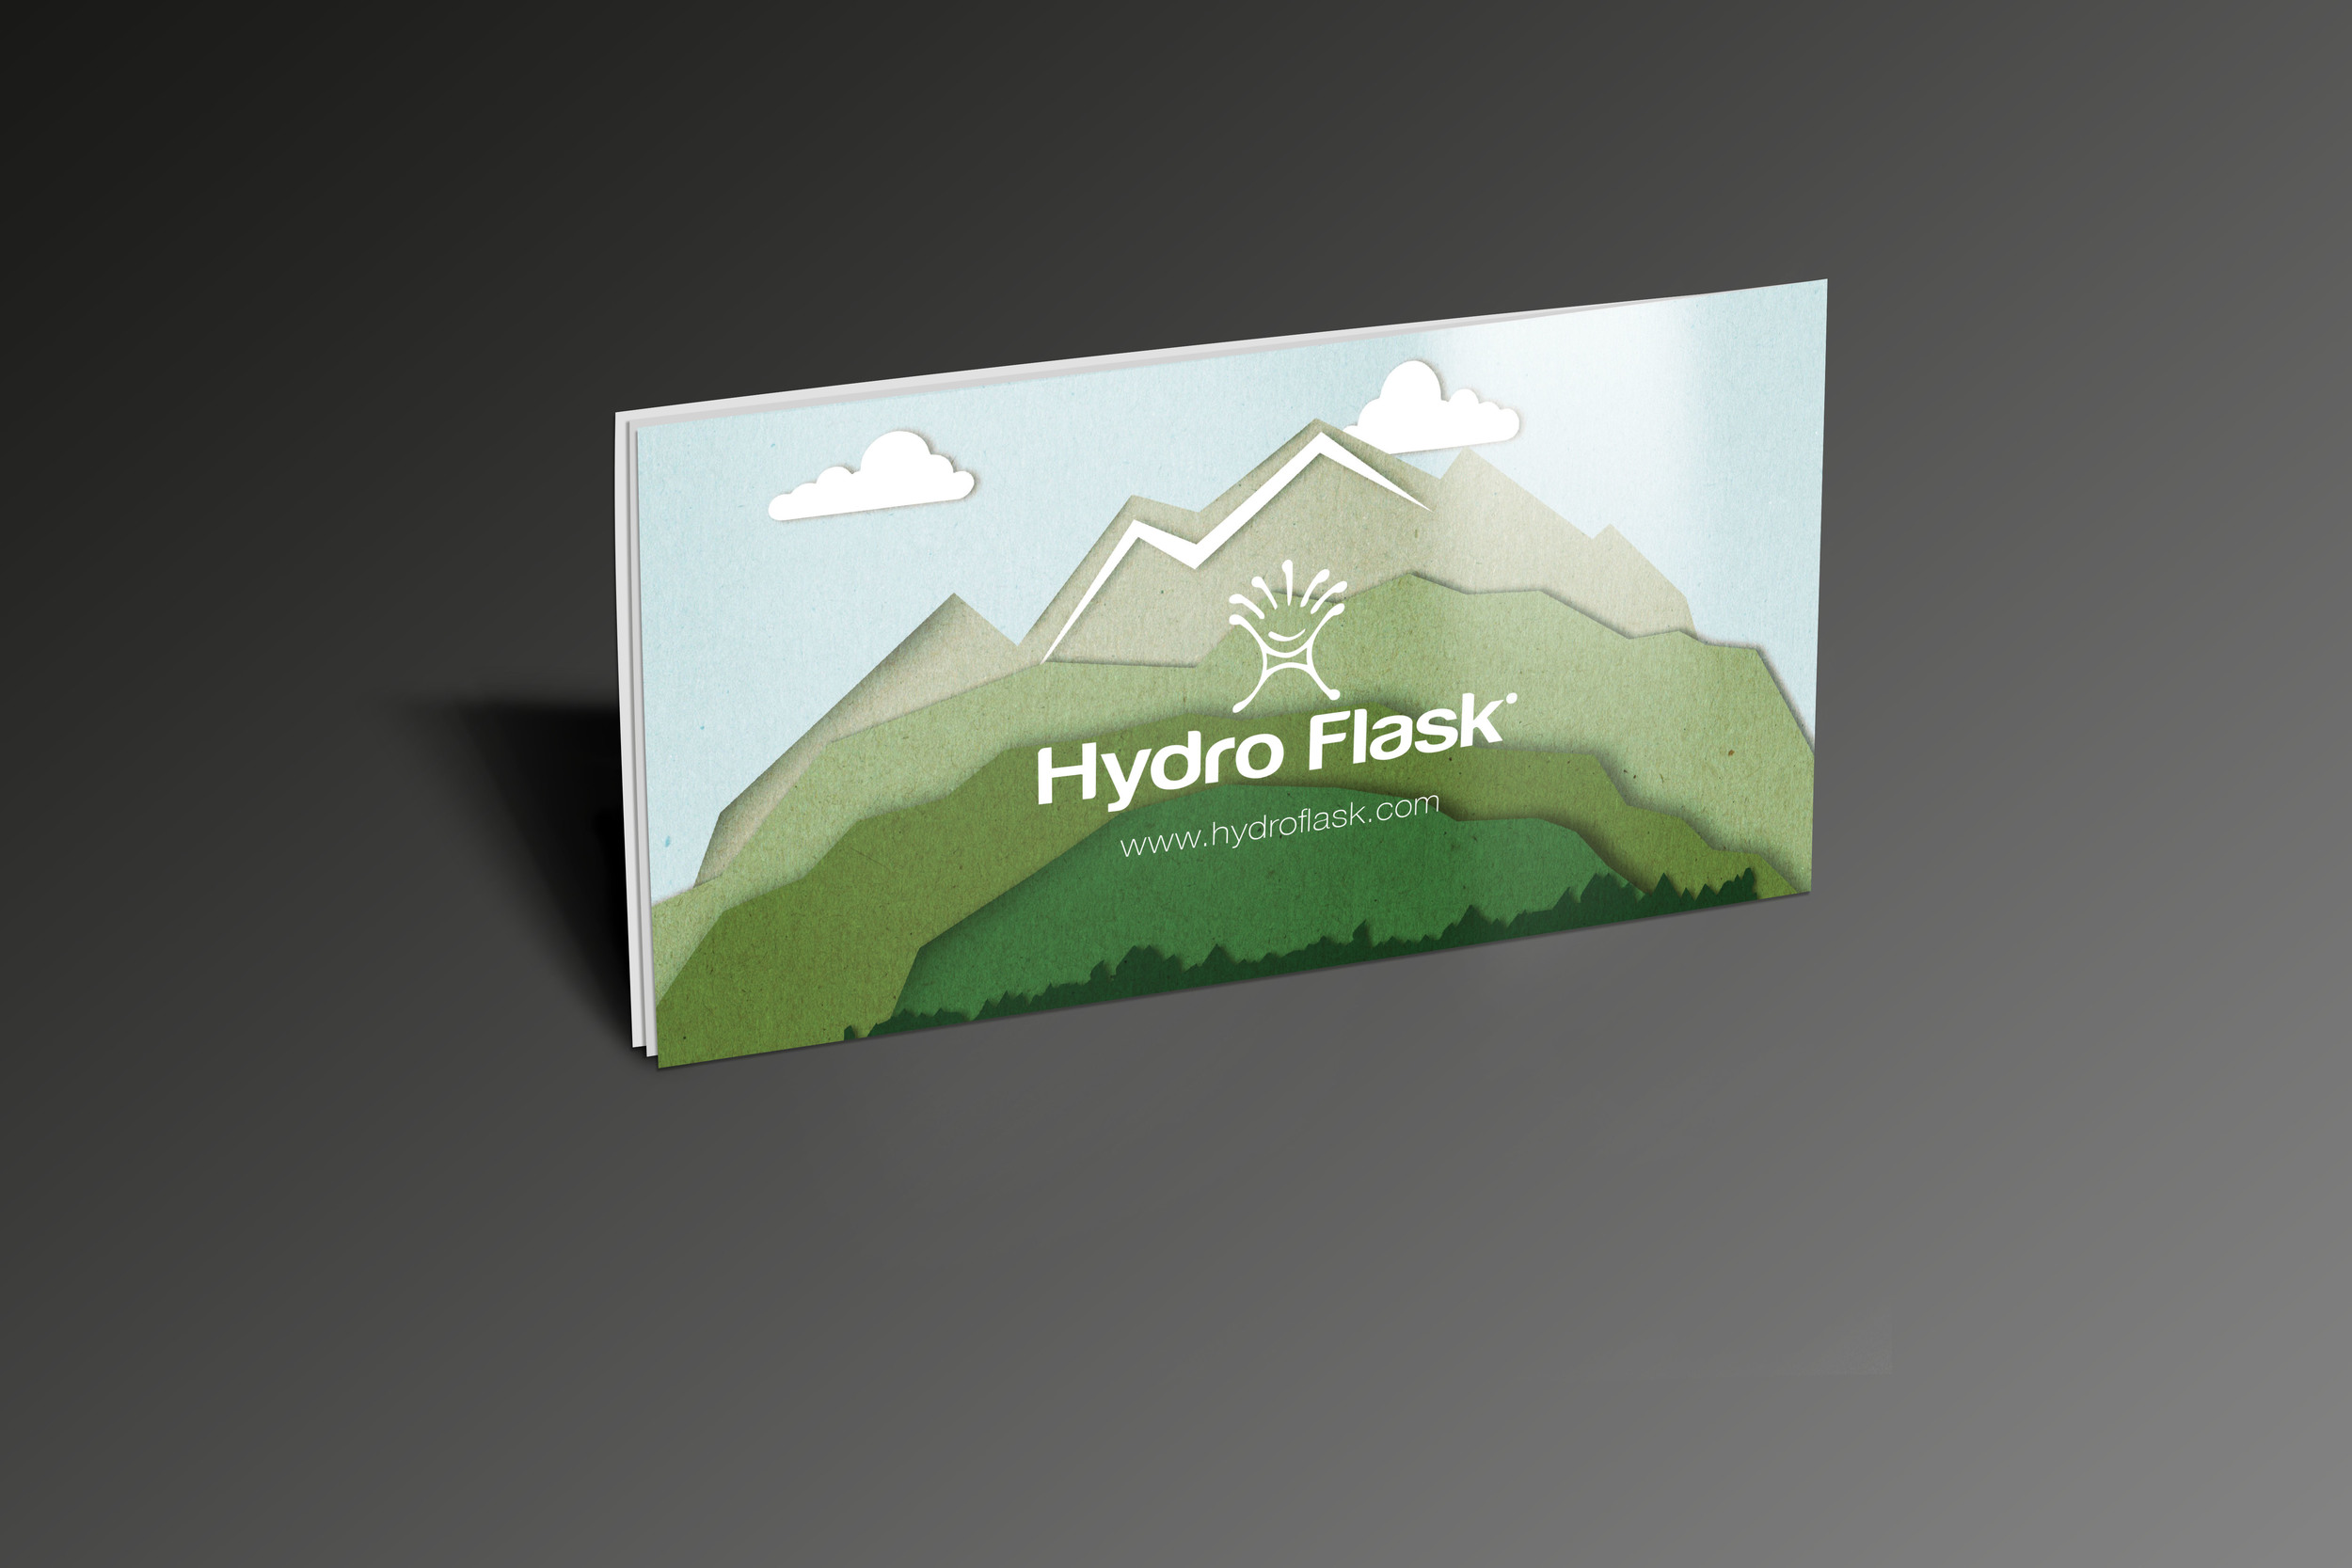 hydroflask back cover.jpg